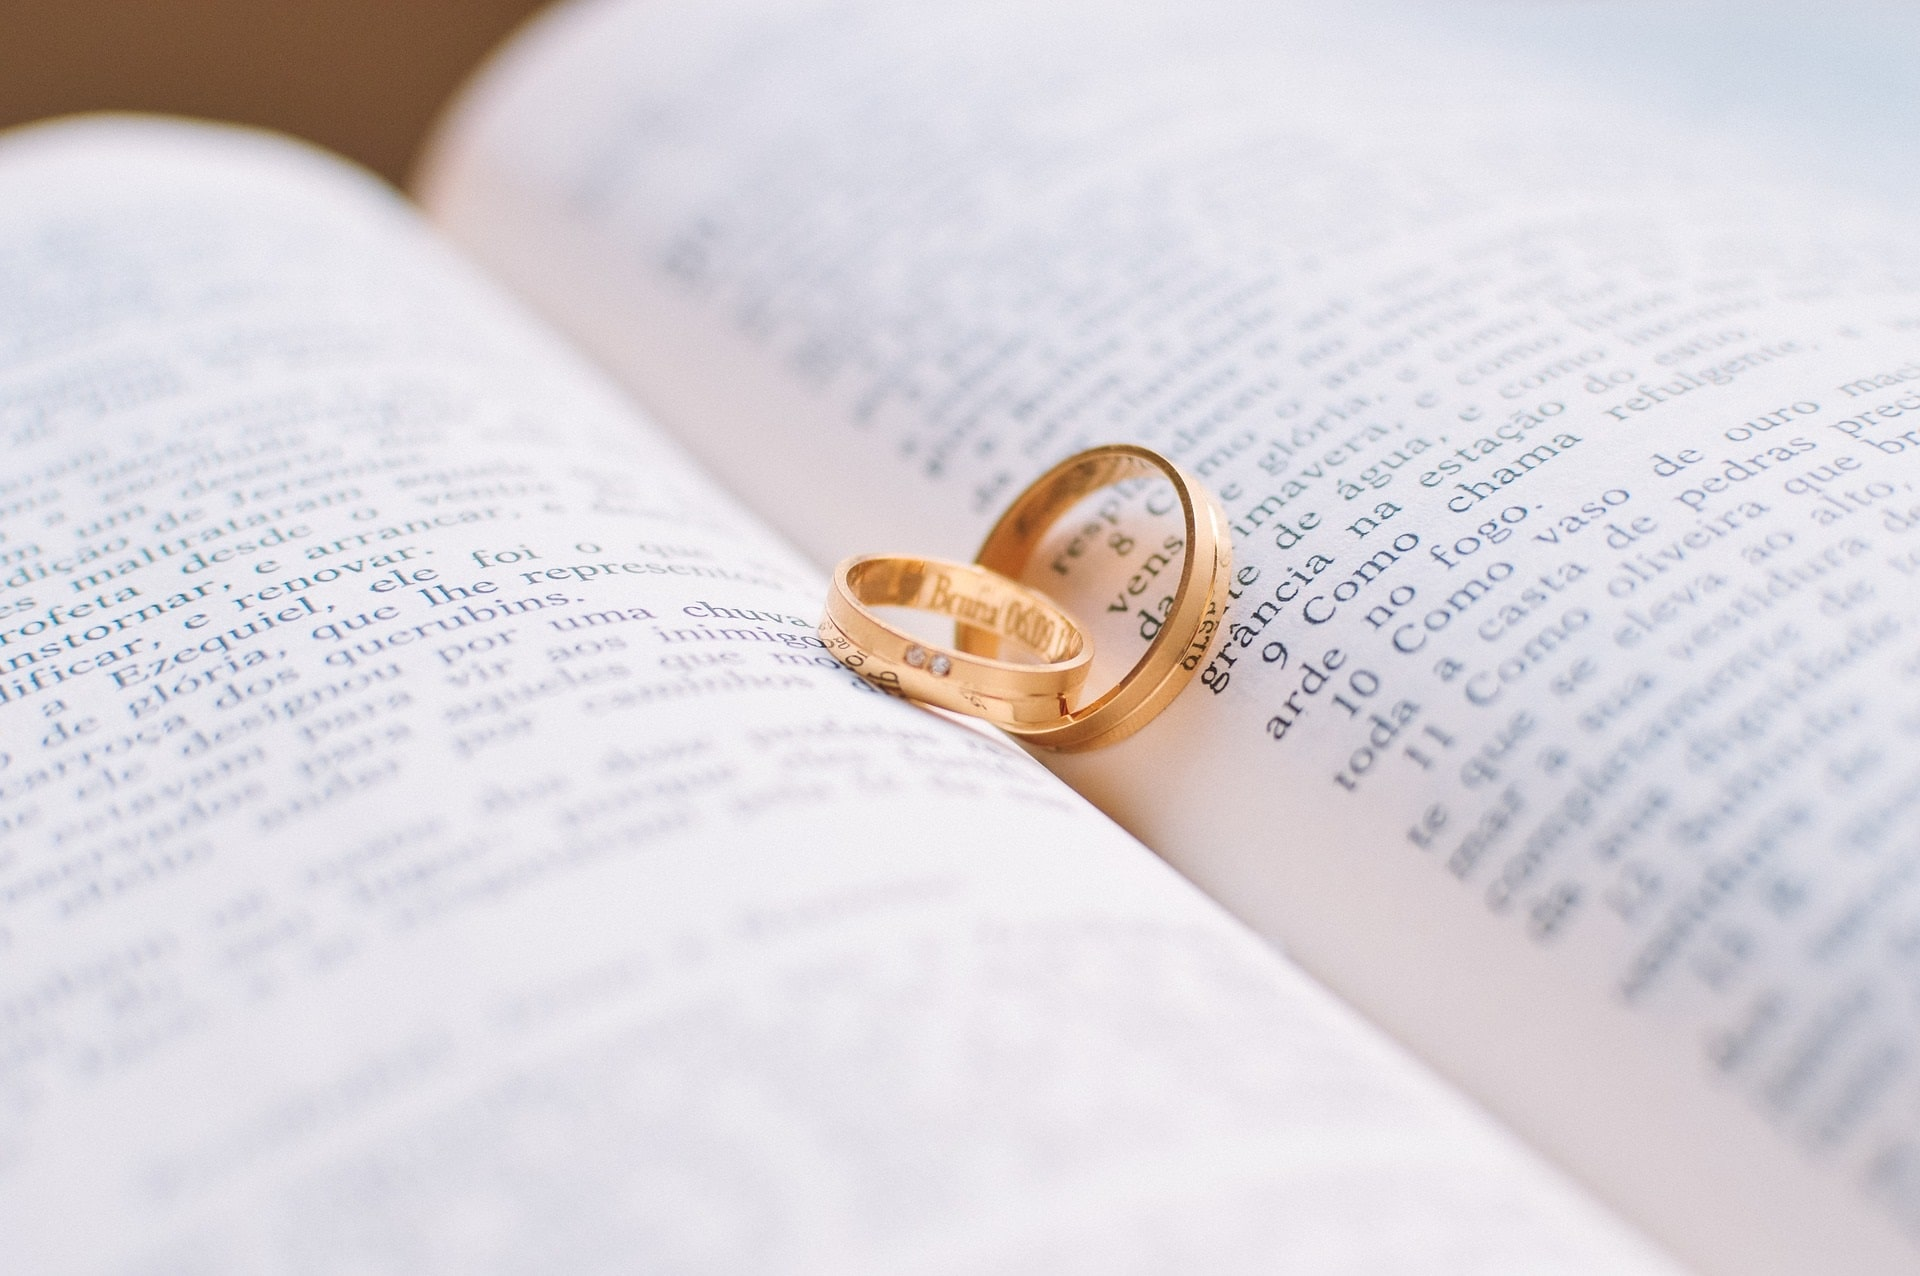 The Crucial Thing 50 Percent of Couples Aren't Doing Before Marriage